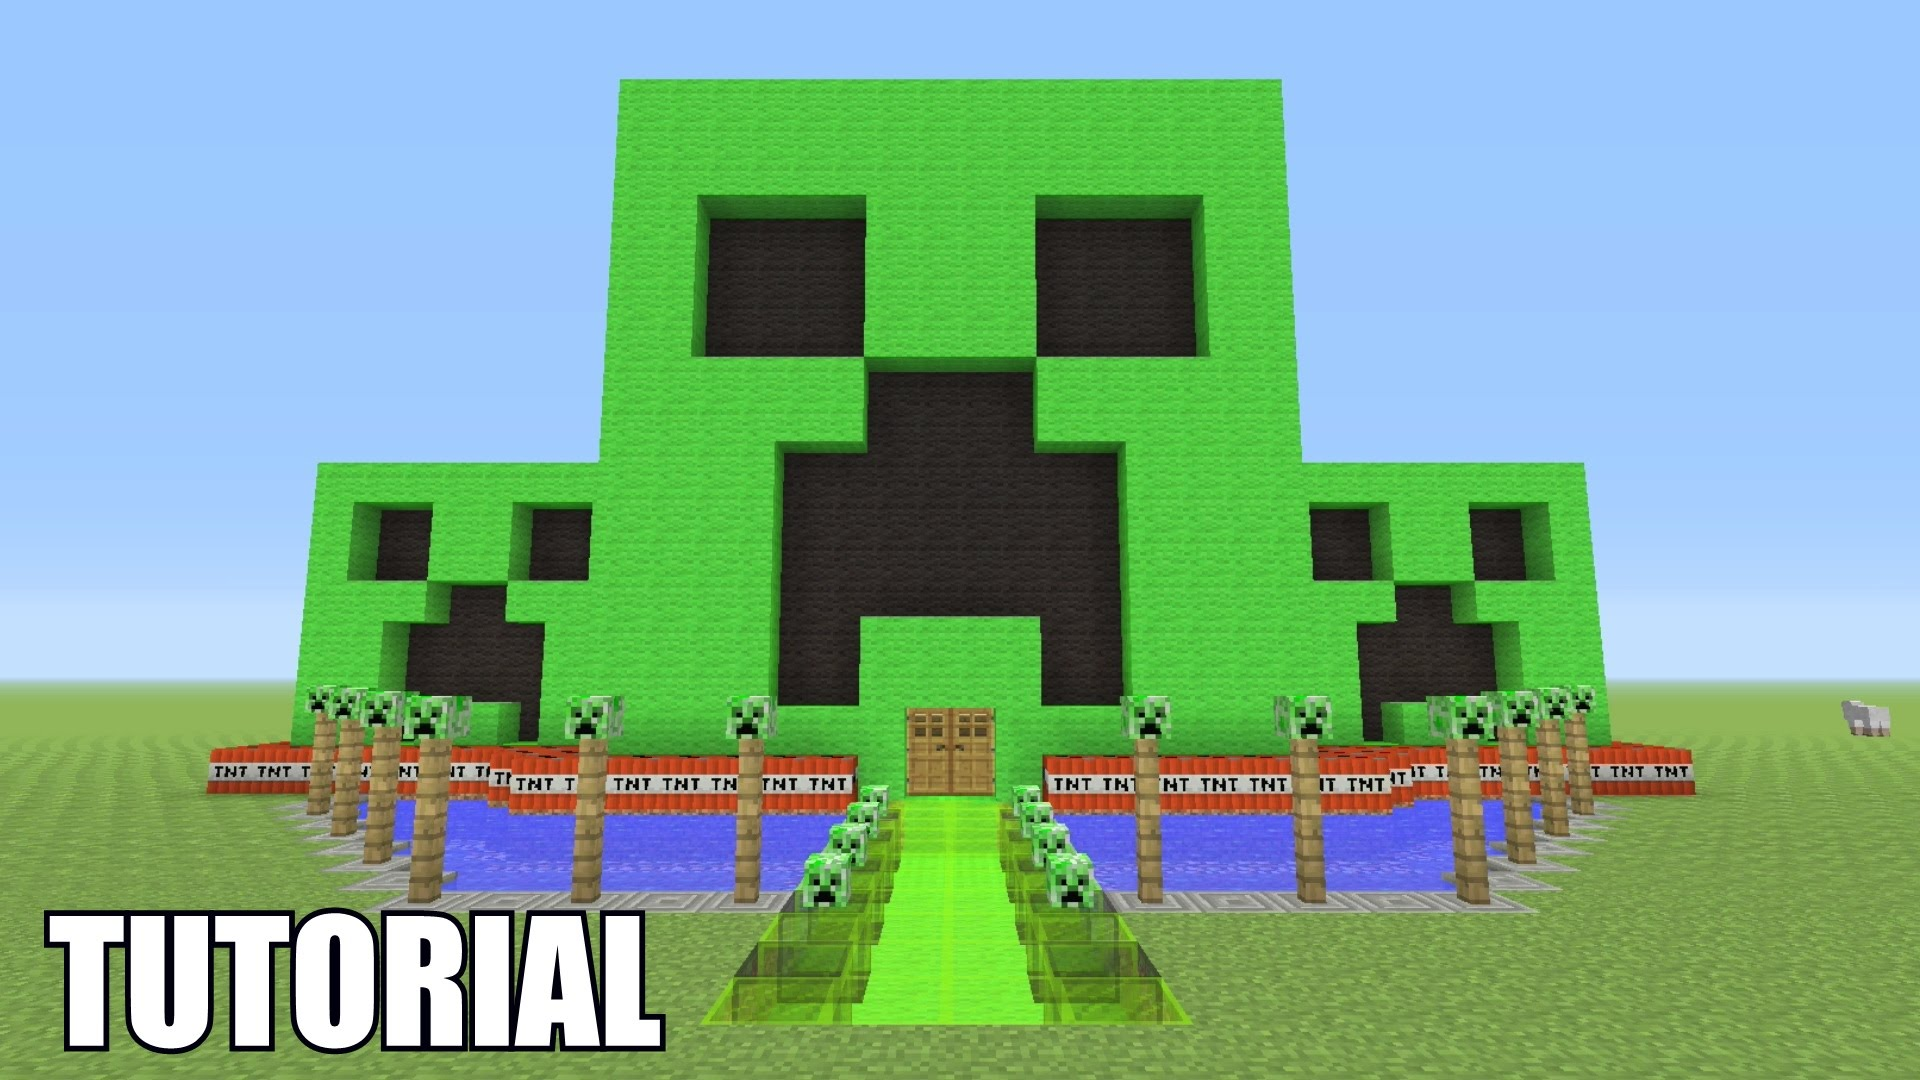 Creeper costume and Minecraft gifts